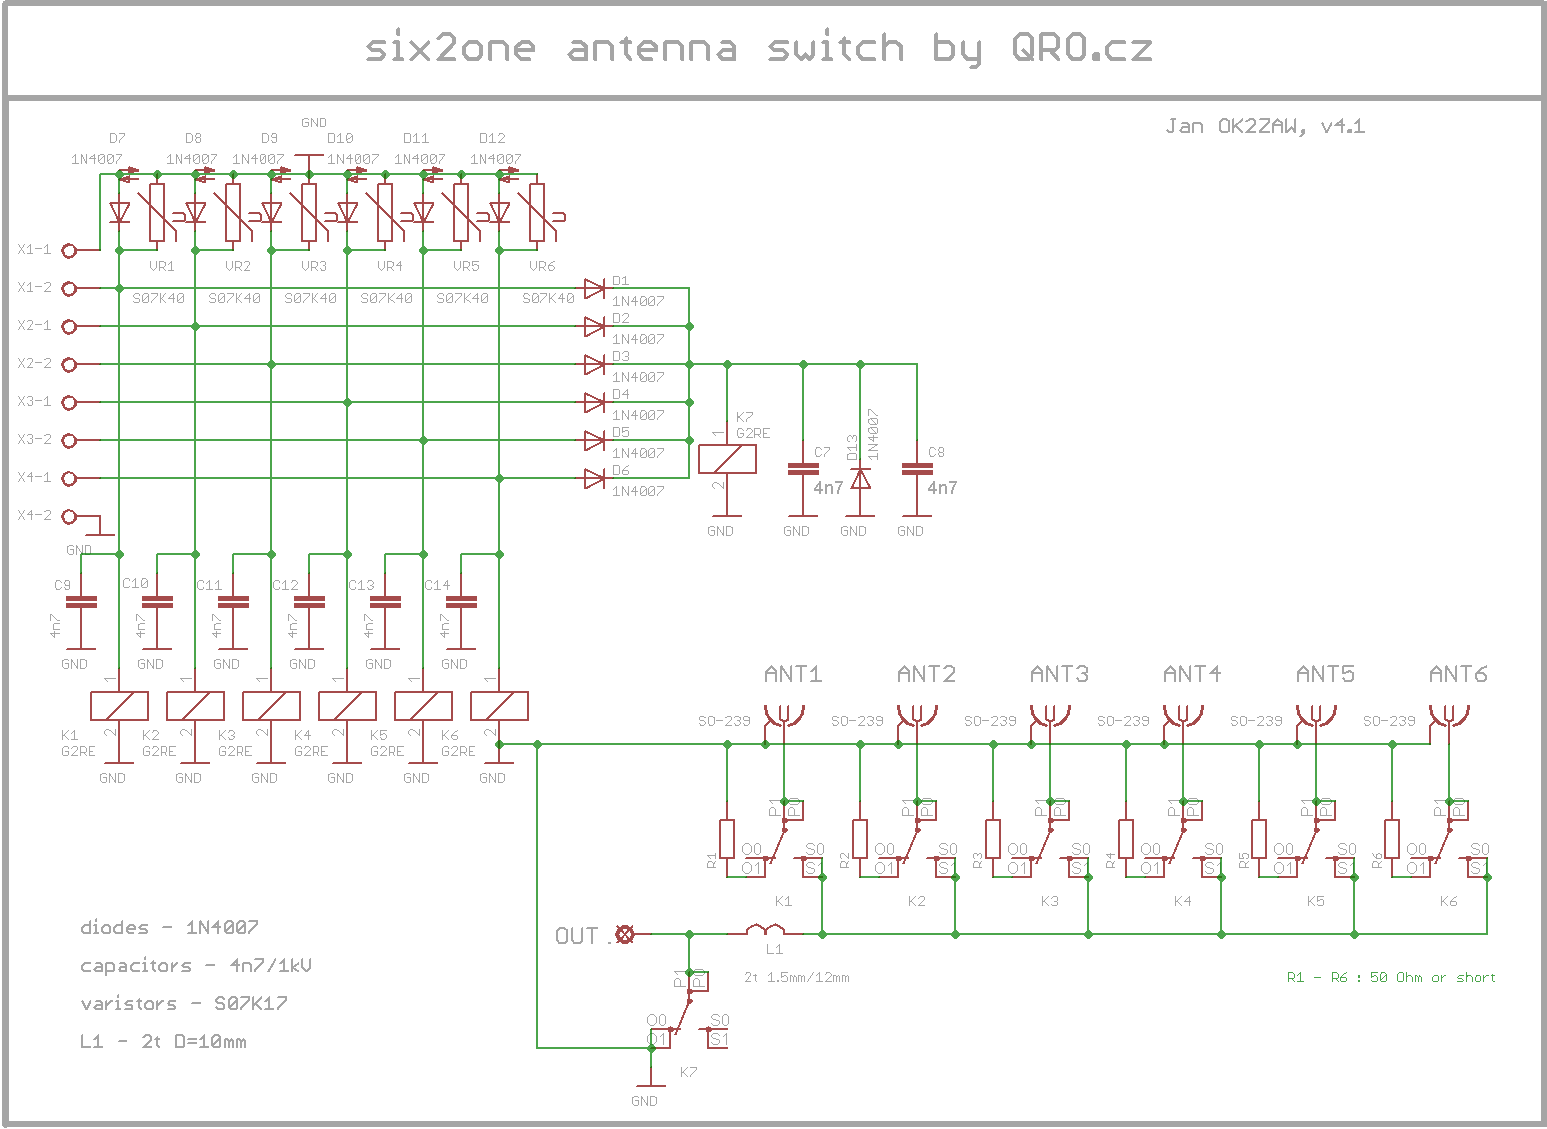 ant-6to1-switch-kit.sch